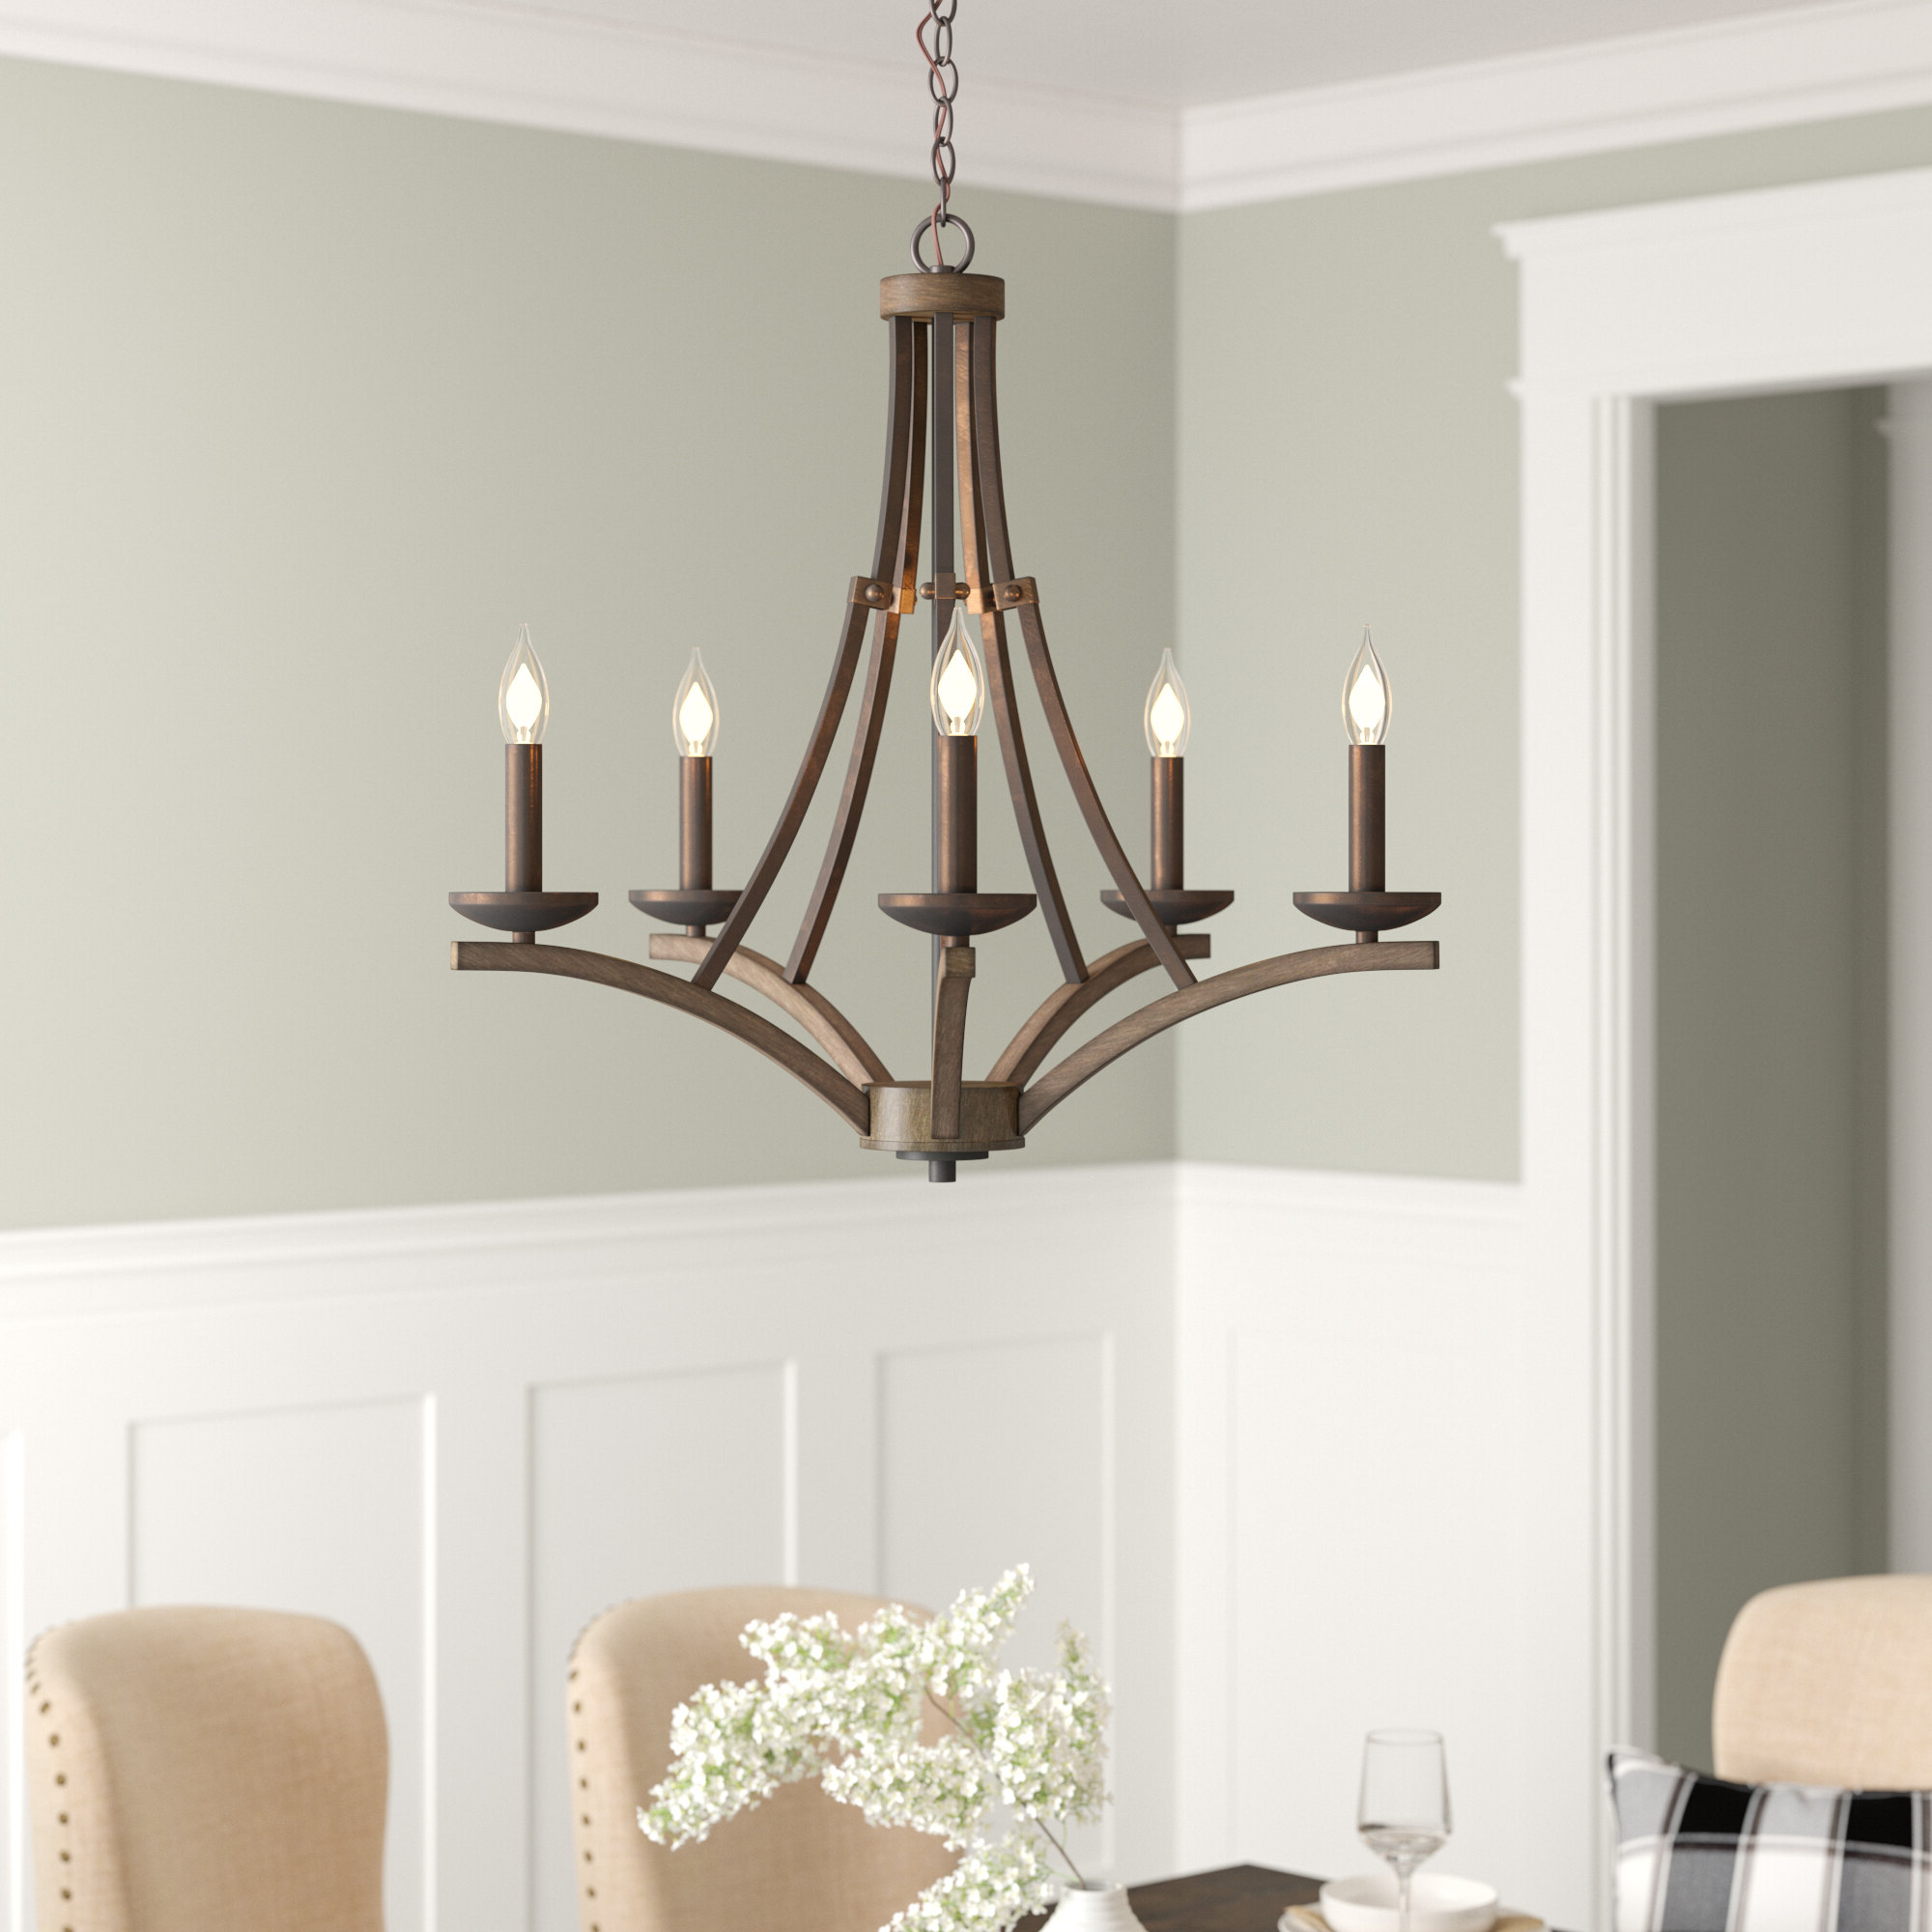 Wireman 5 Light Candle Style Chandelier In Popular Kenna 5 Light Empire Chandeliers (View 25 of 25)